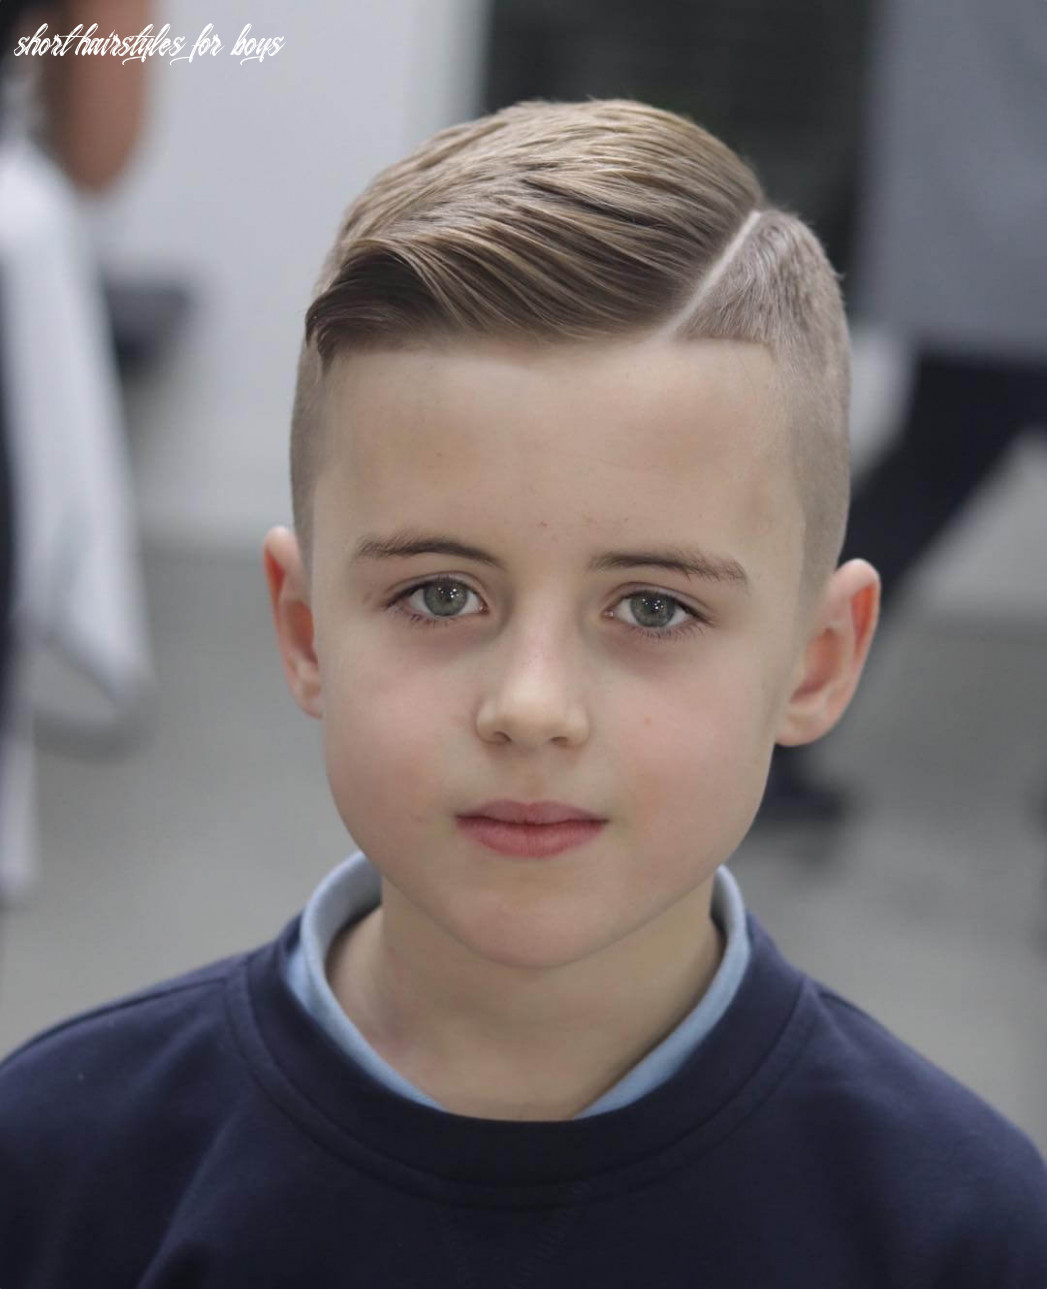 Short Haircuts for Boys Kids - 11+ » Short Haircuts Models